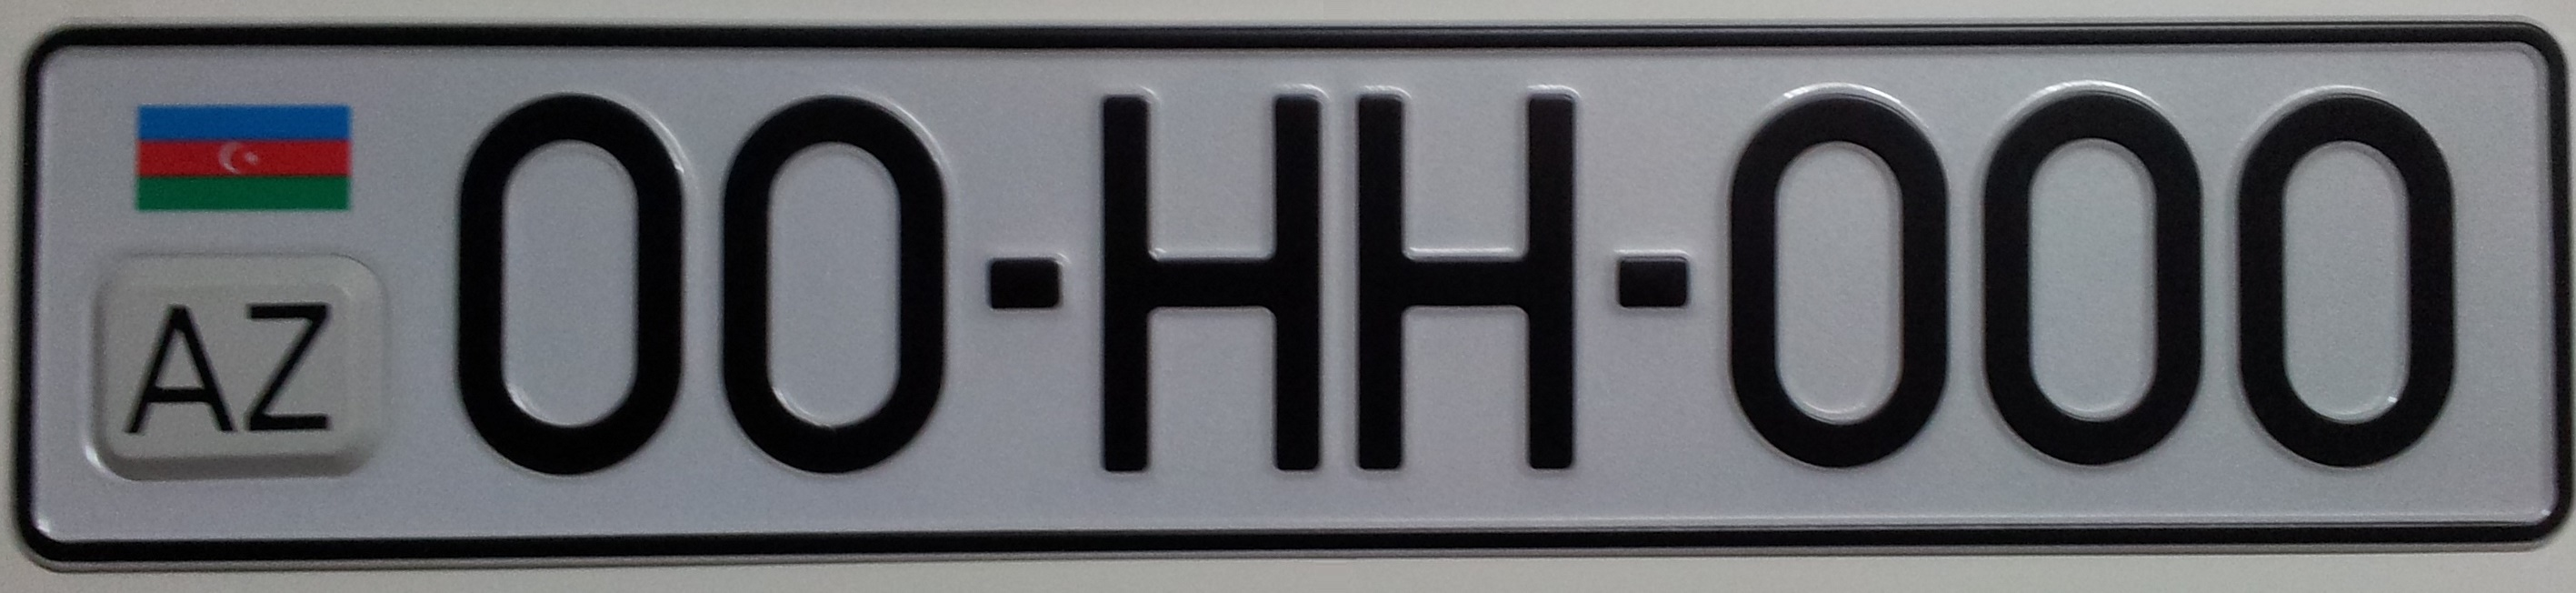 Car history by plate number verification